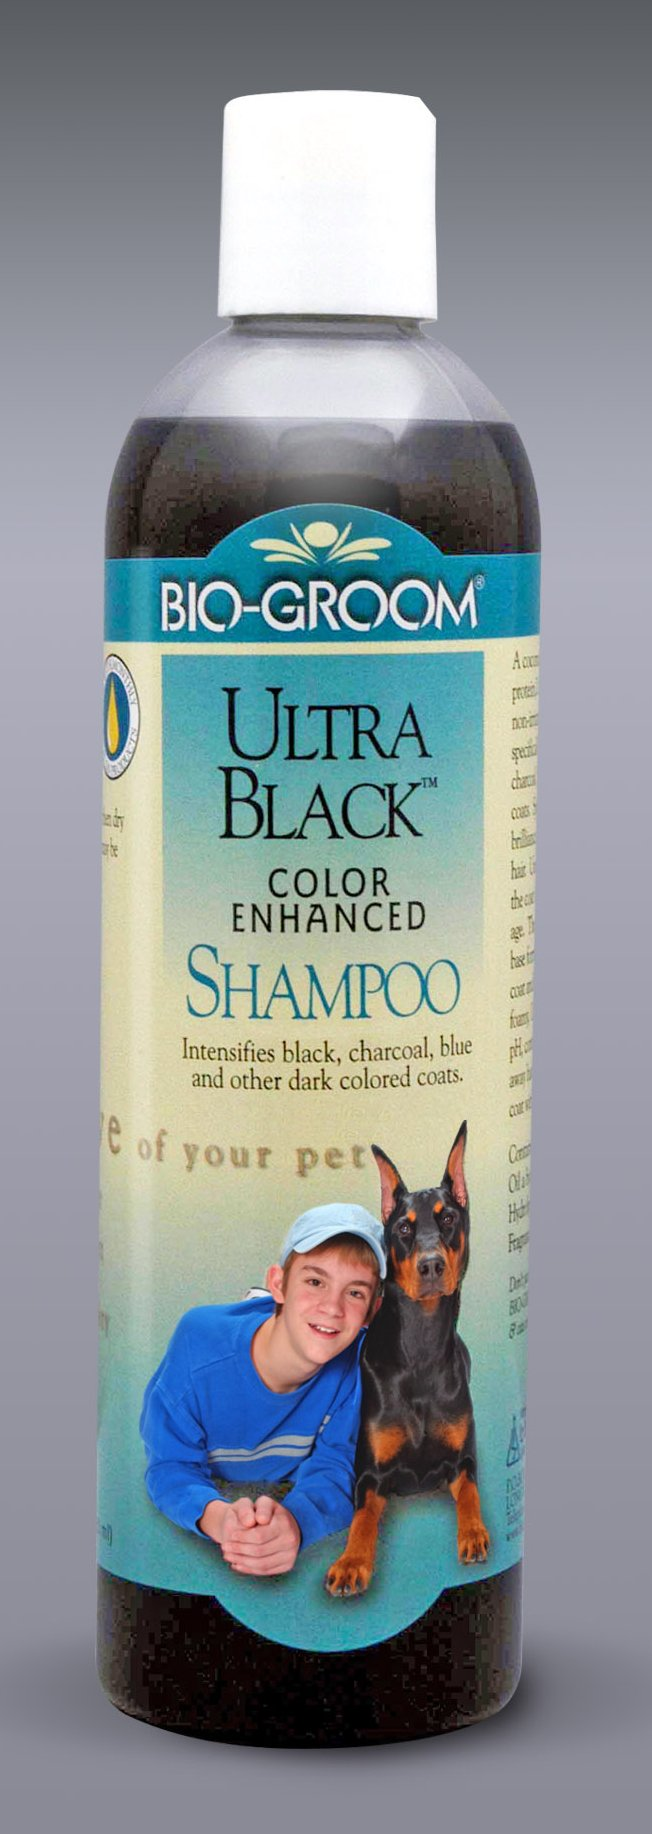 Bio-Groom Ultra Black Color Enhanced Shampoo